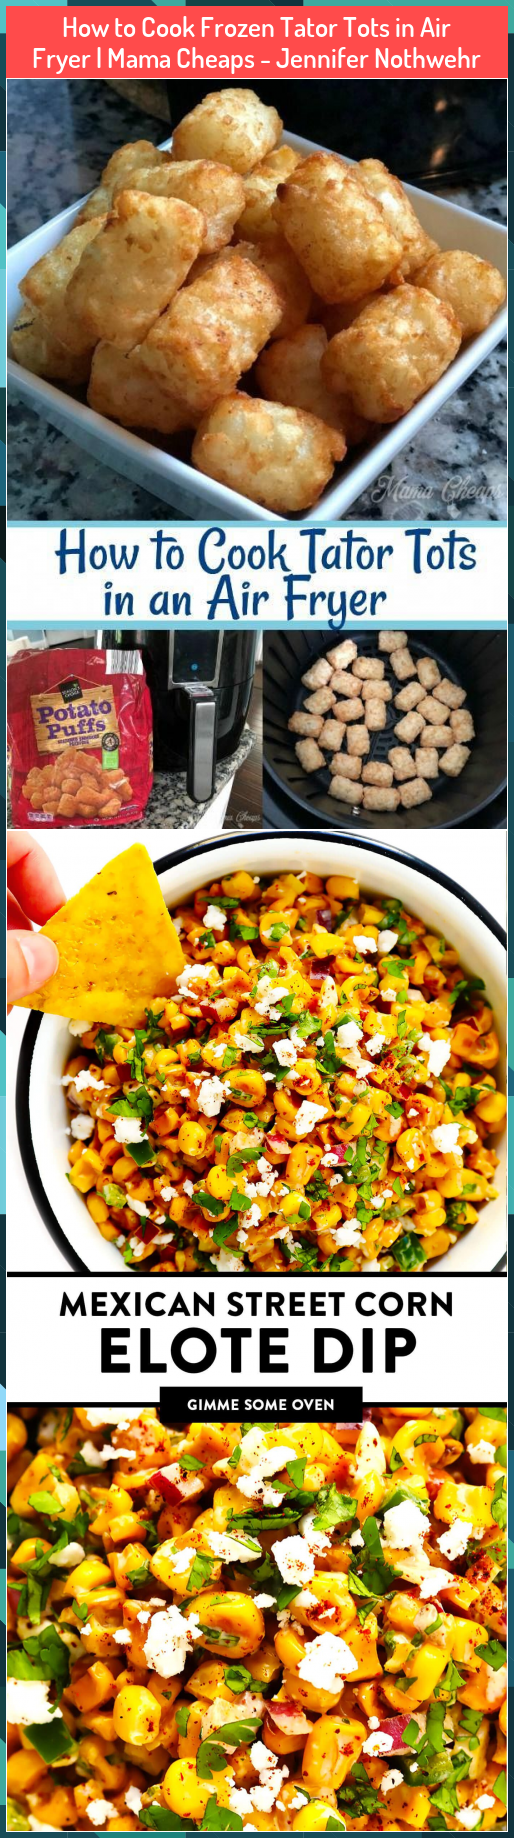 How to Cook Frozen Tator Tots in Air Fryer  Mama Cheaps  Jennifer Nothwehr